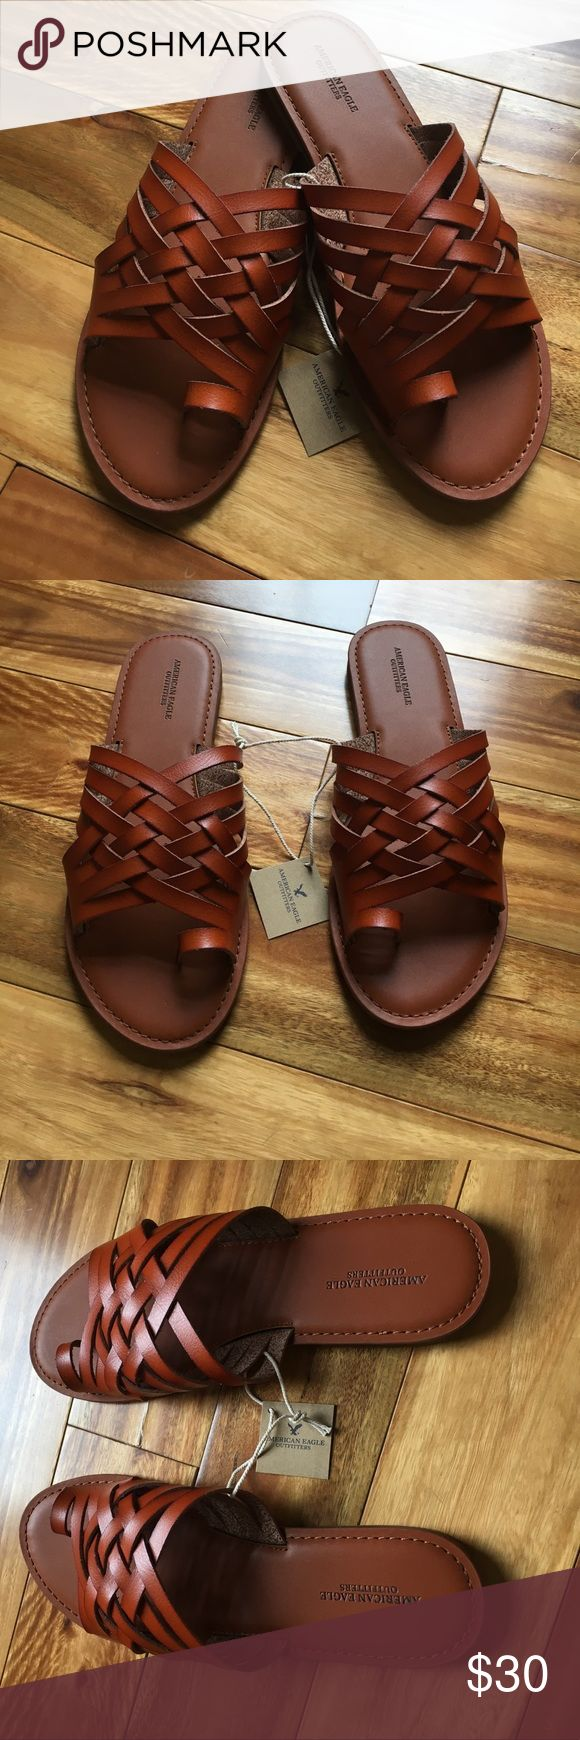 American Eagle Outfitters Brown Sandals 8 NWT New with tags! Thanks so much for checking out this item today! We know that the shipping price is kinda ridiculous, so we suggest you bundle to get more for your money! You will also be saving money as well! Check out our bundle discount below! 💰reasonable offers accepted! American Eagle Outfitters Shoes Sandals